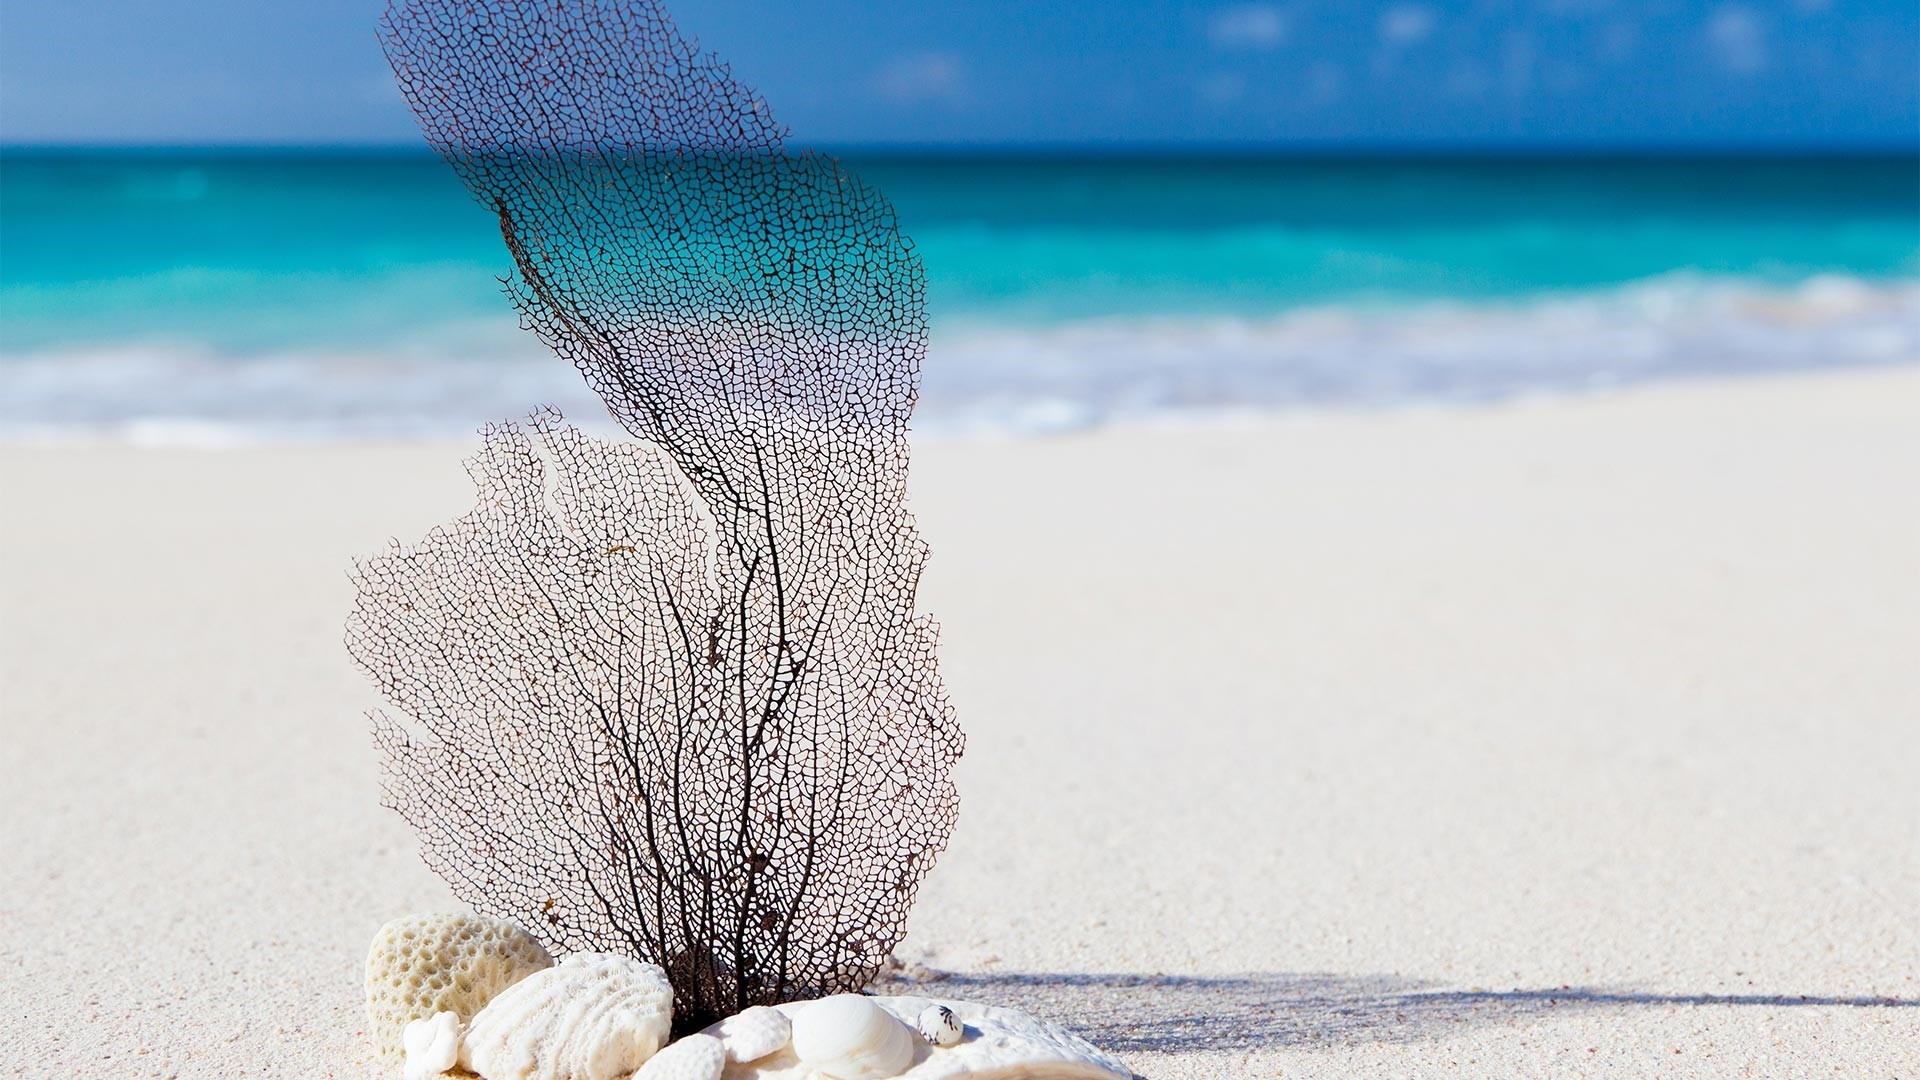 Sea White Sand wallpaper for desktop